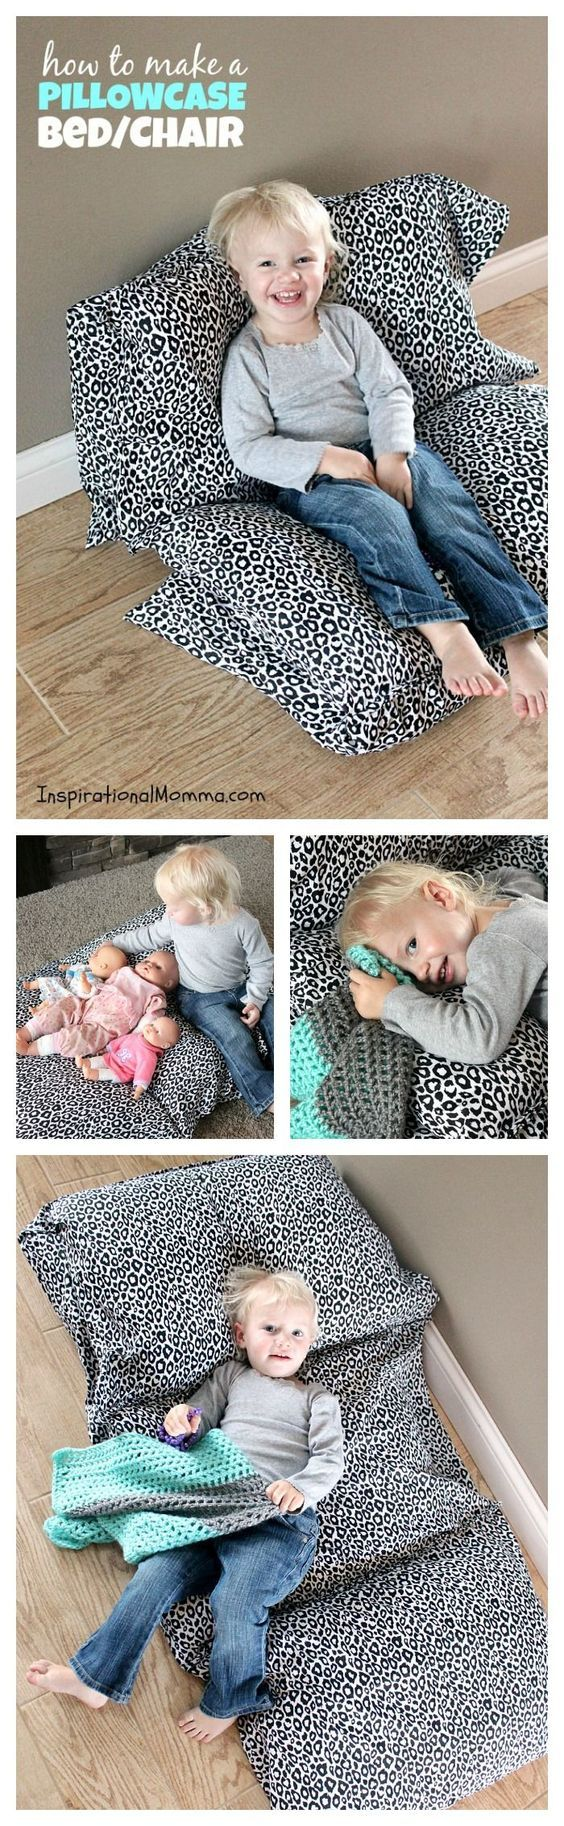 Pillowcase Bed/Chair - This bed/chair is inexpensive and so easy to make. Your little one will love discovering just how many ways it can be used!: